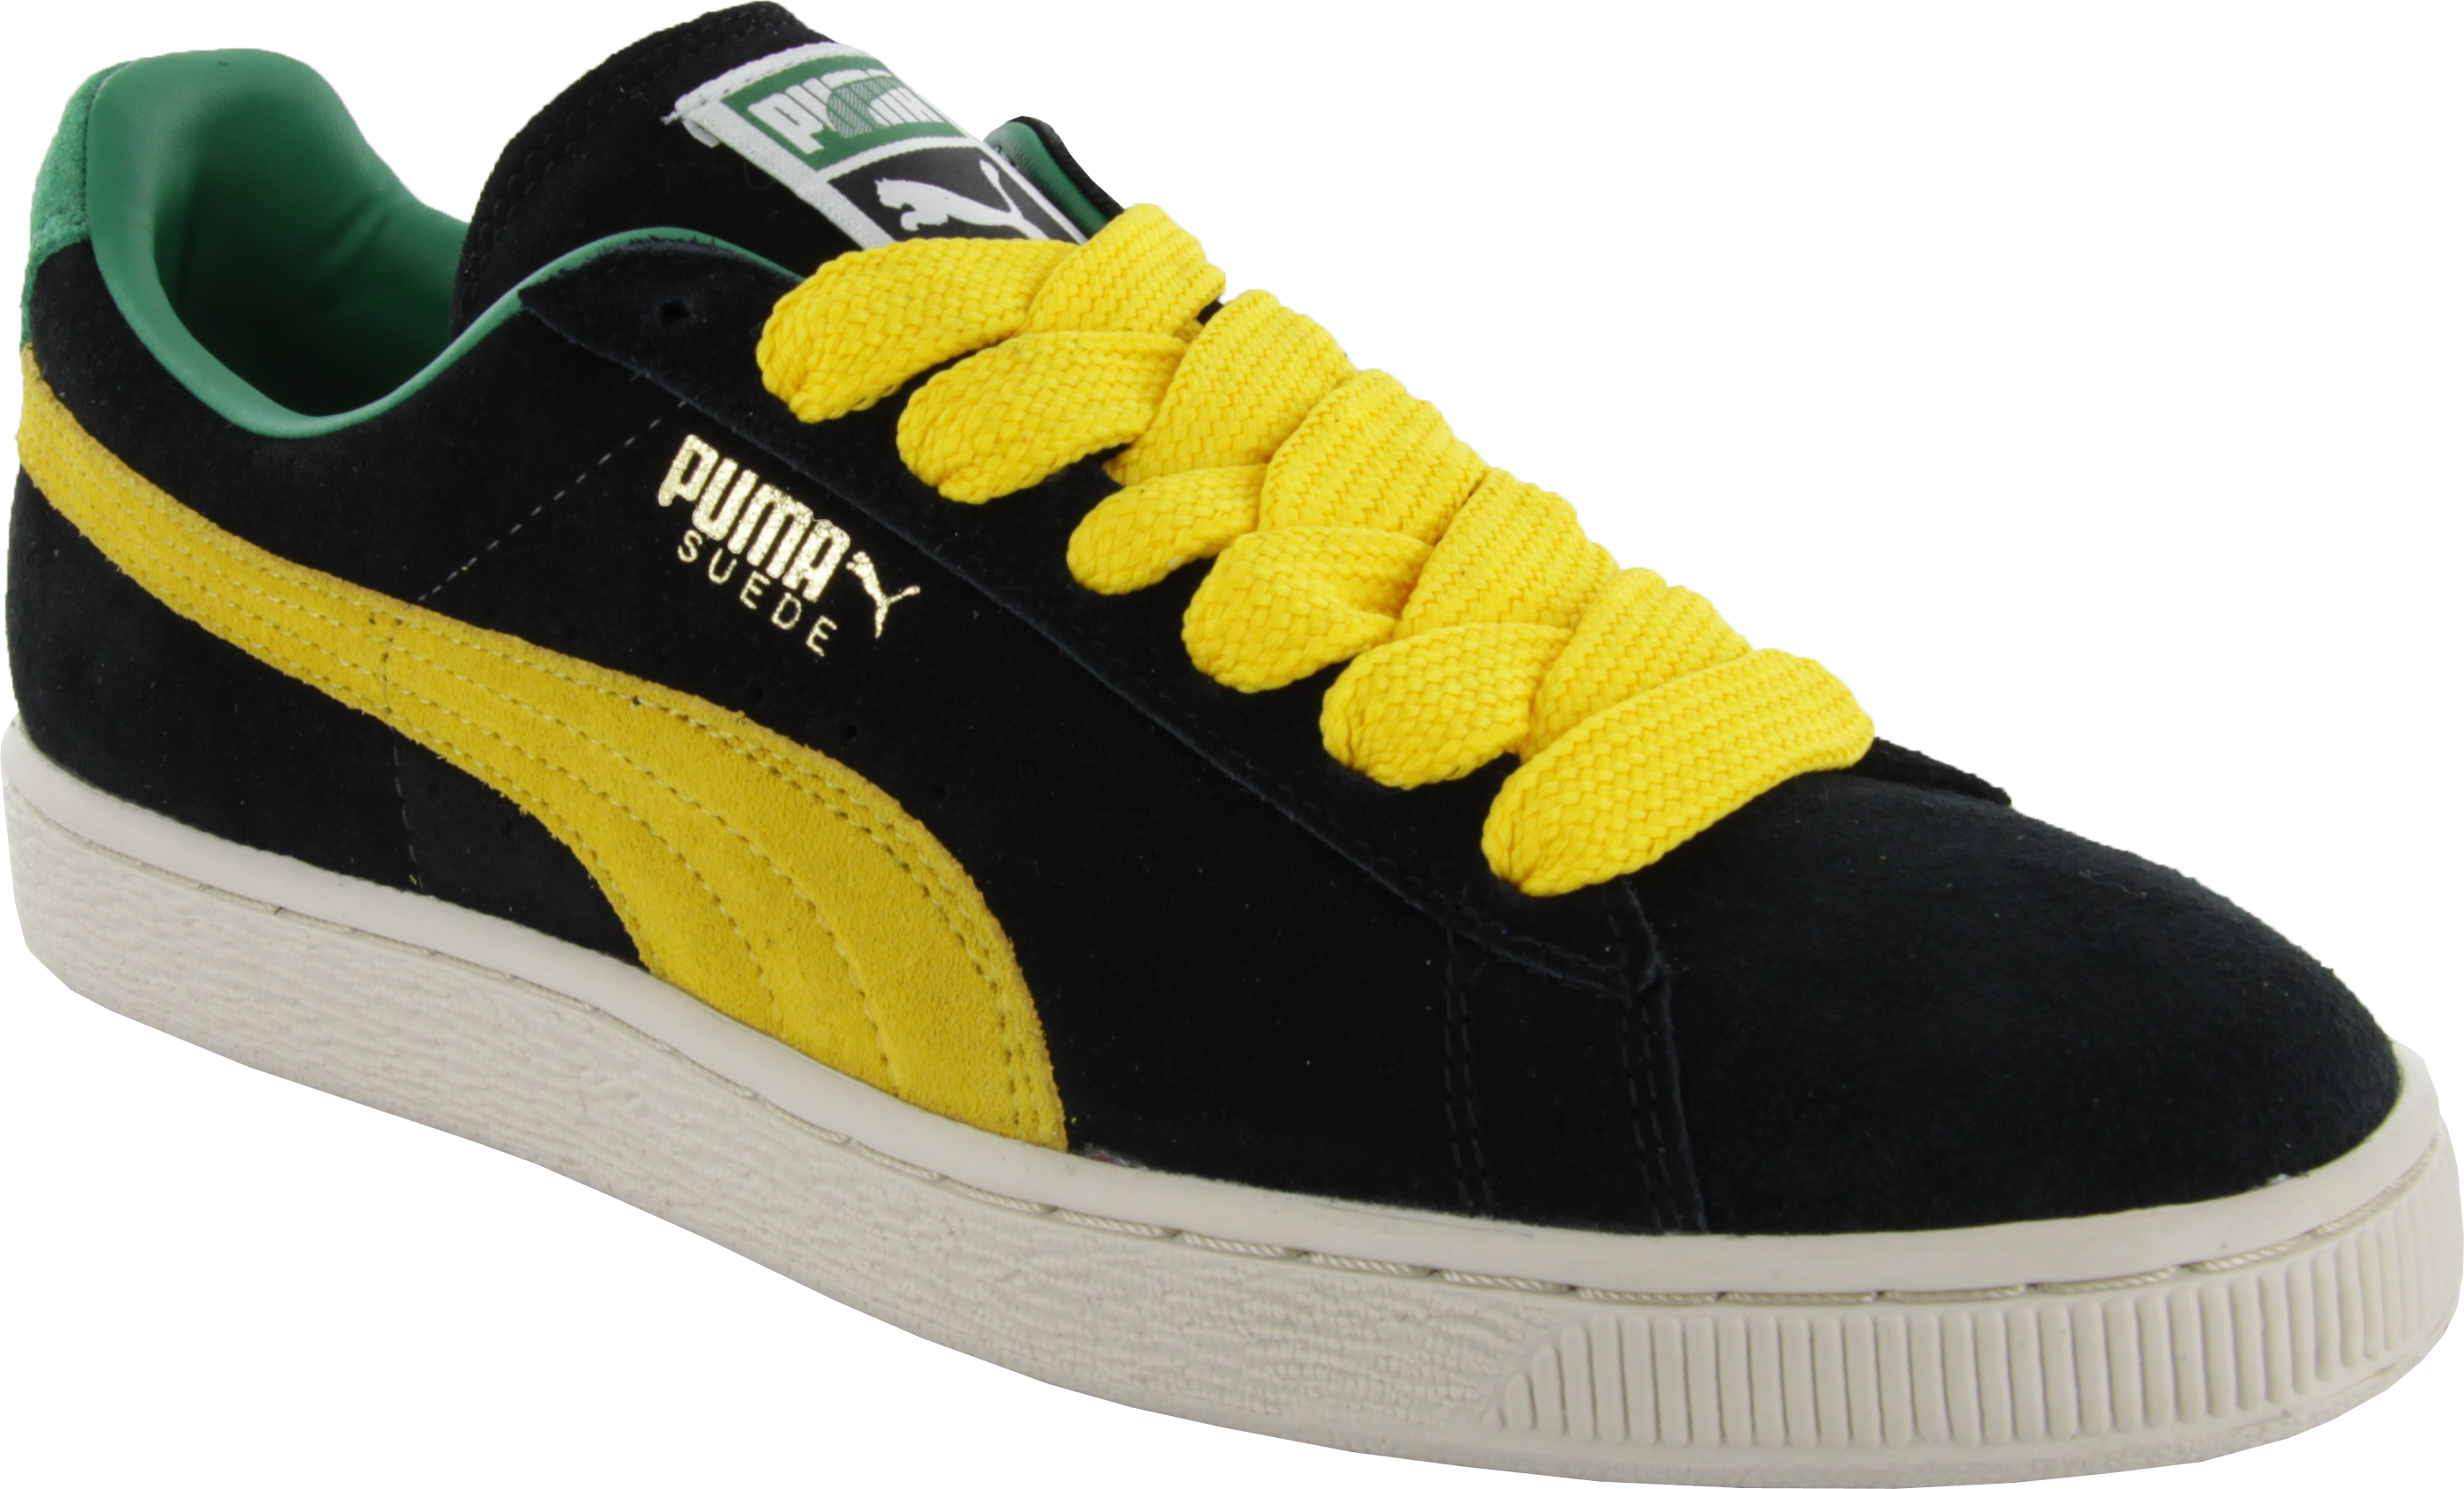 puma suede yellow green